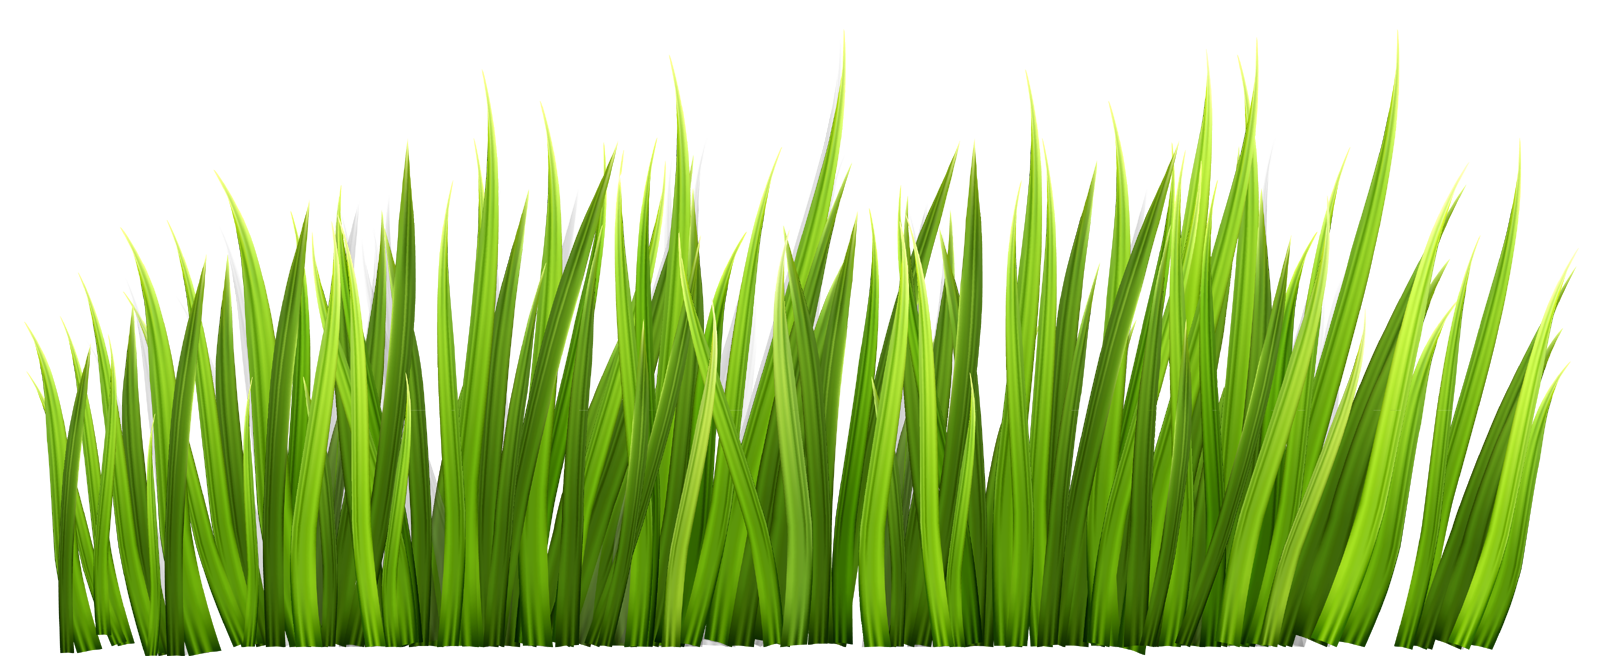 Grass clipart png format. Images free download transparent